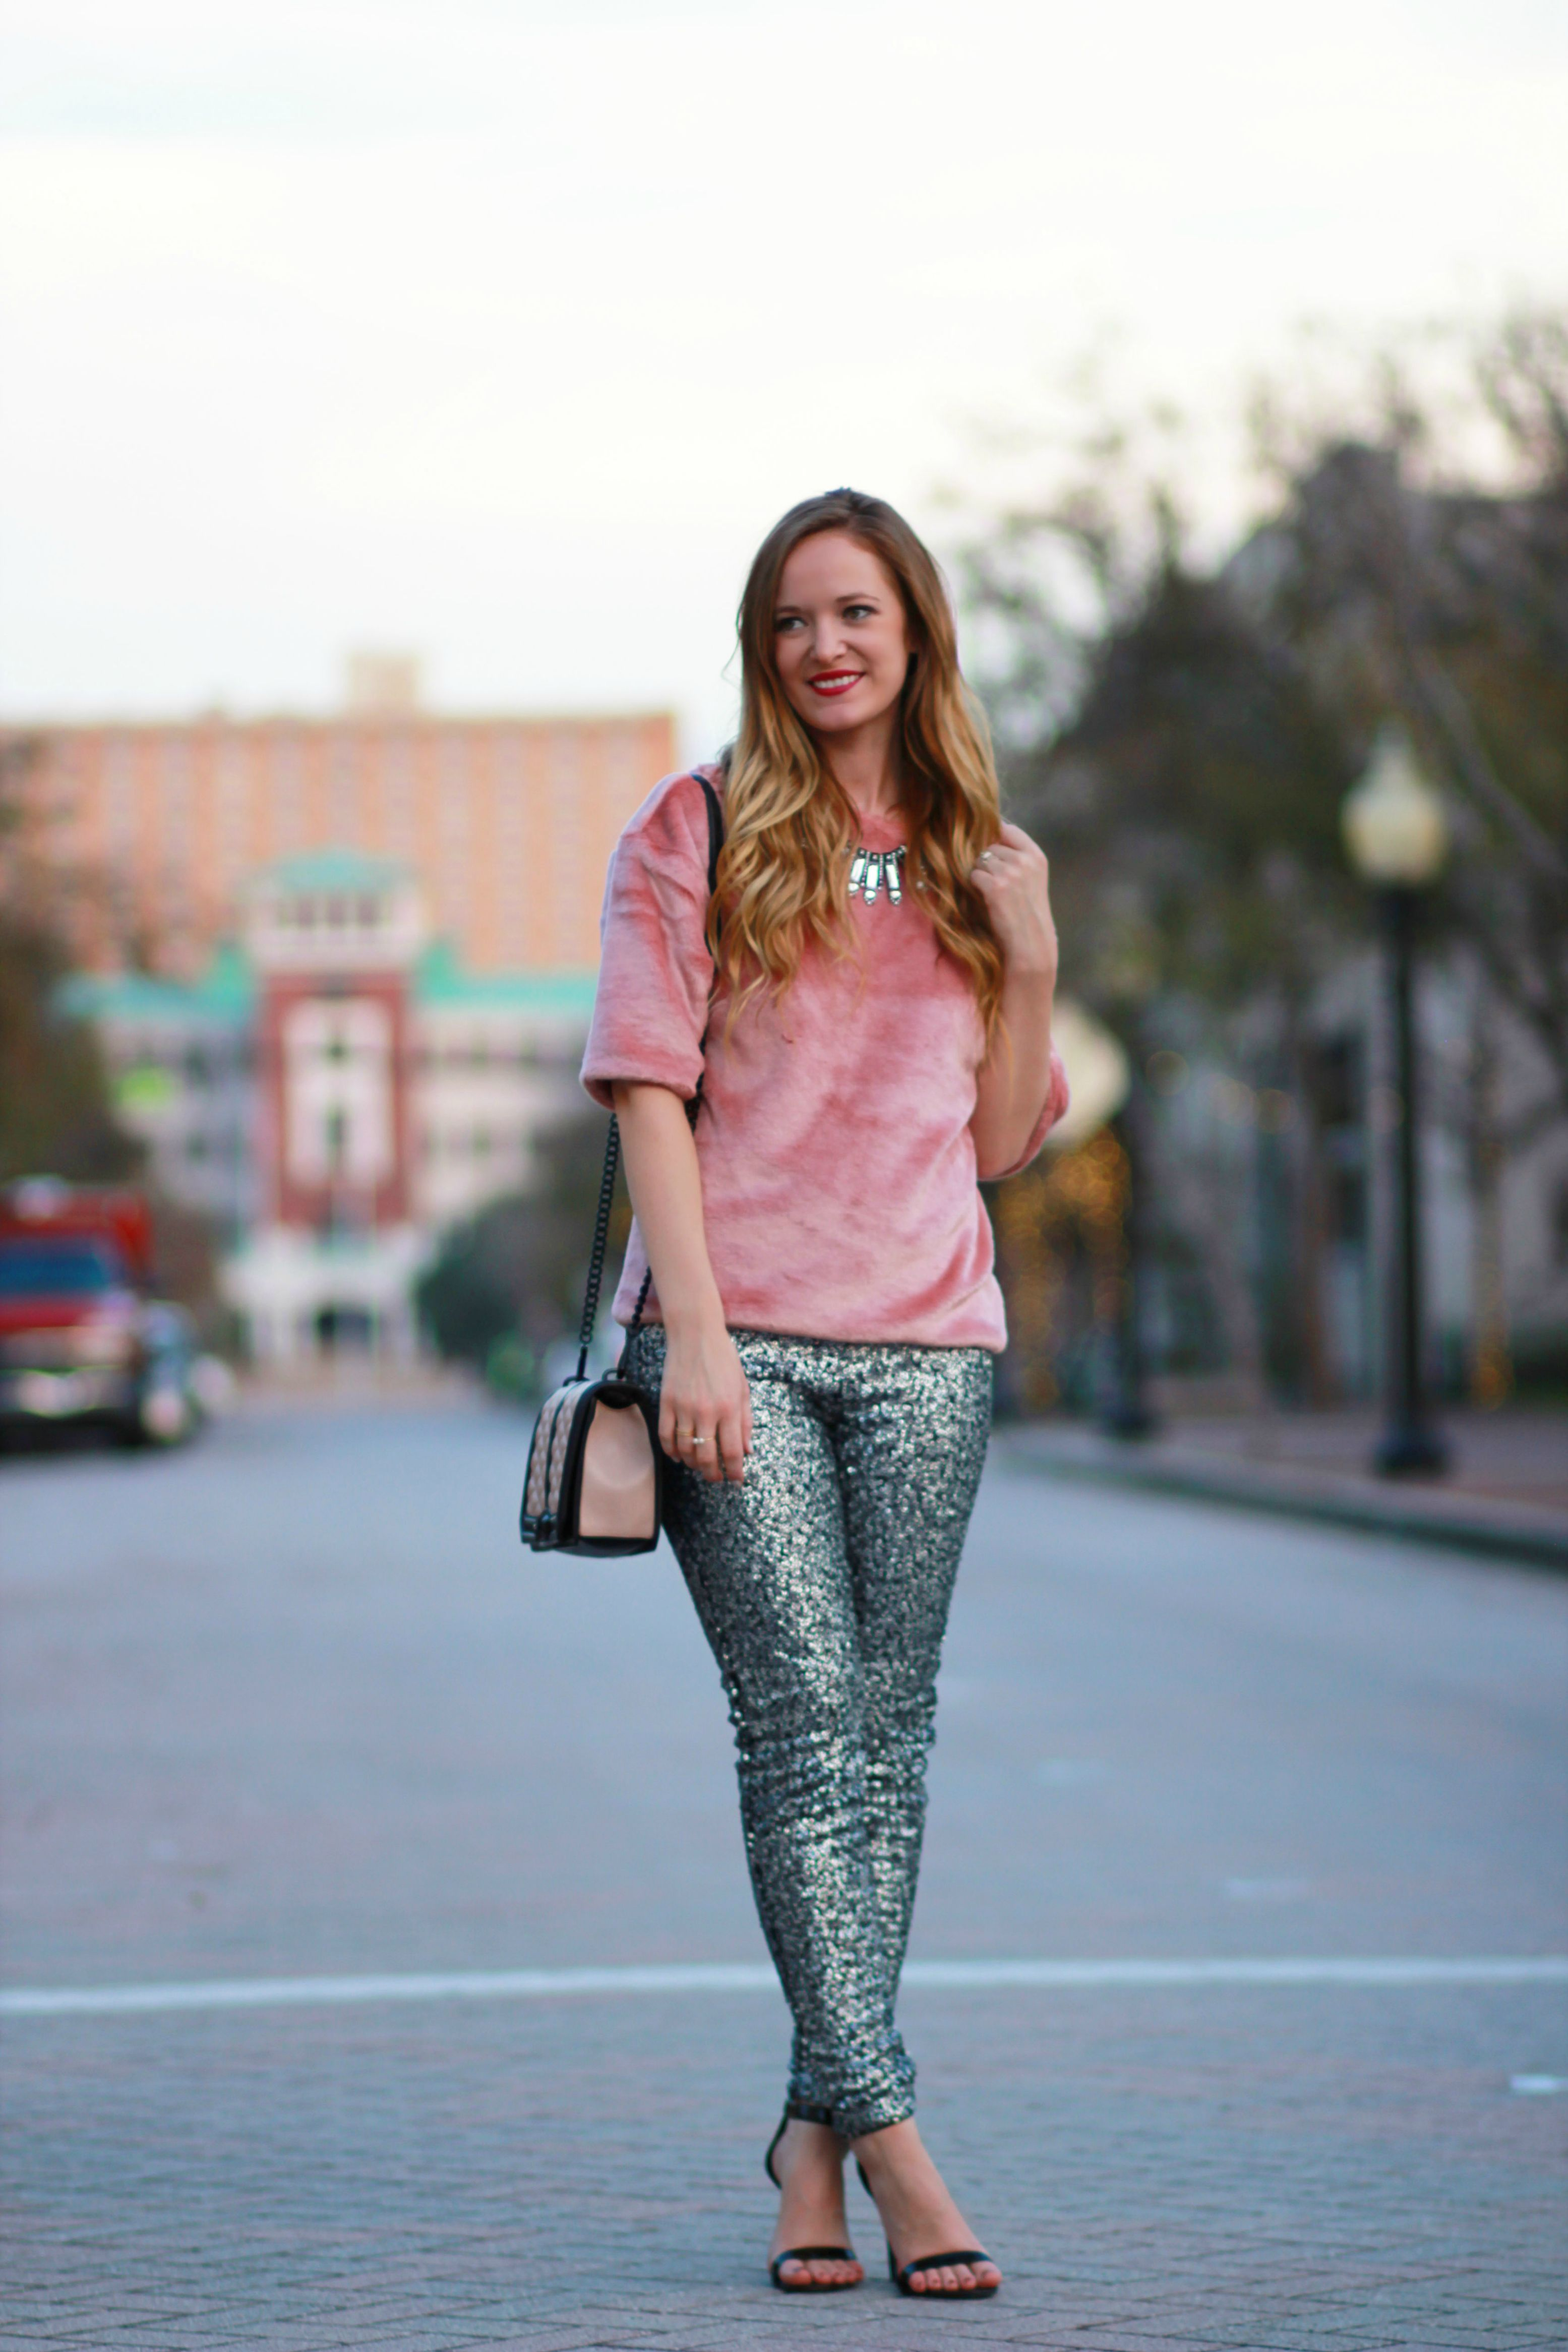 orlando, fl style blogger styles h&m fur top with h&m sequin pants for new years eve outfit inspiration